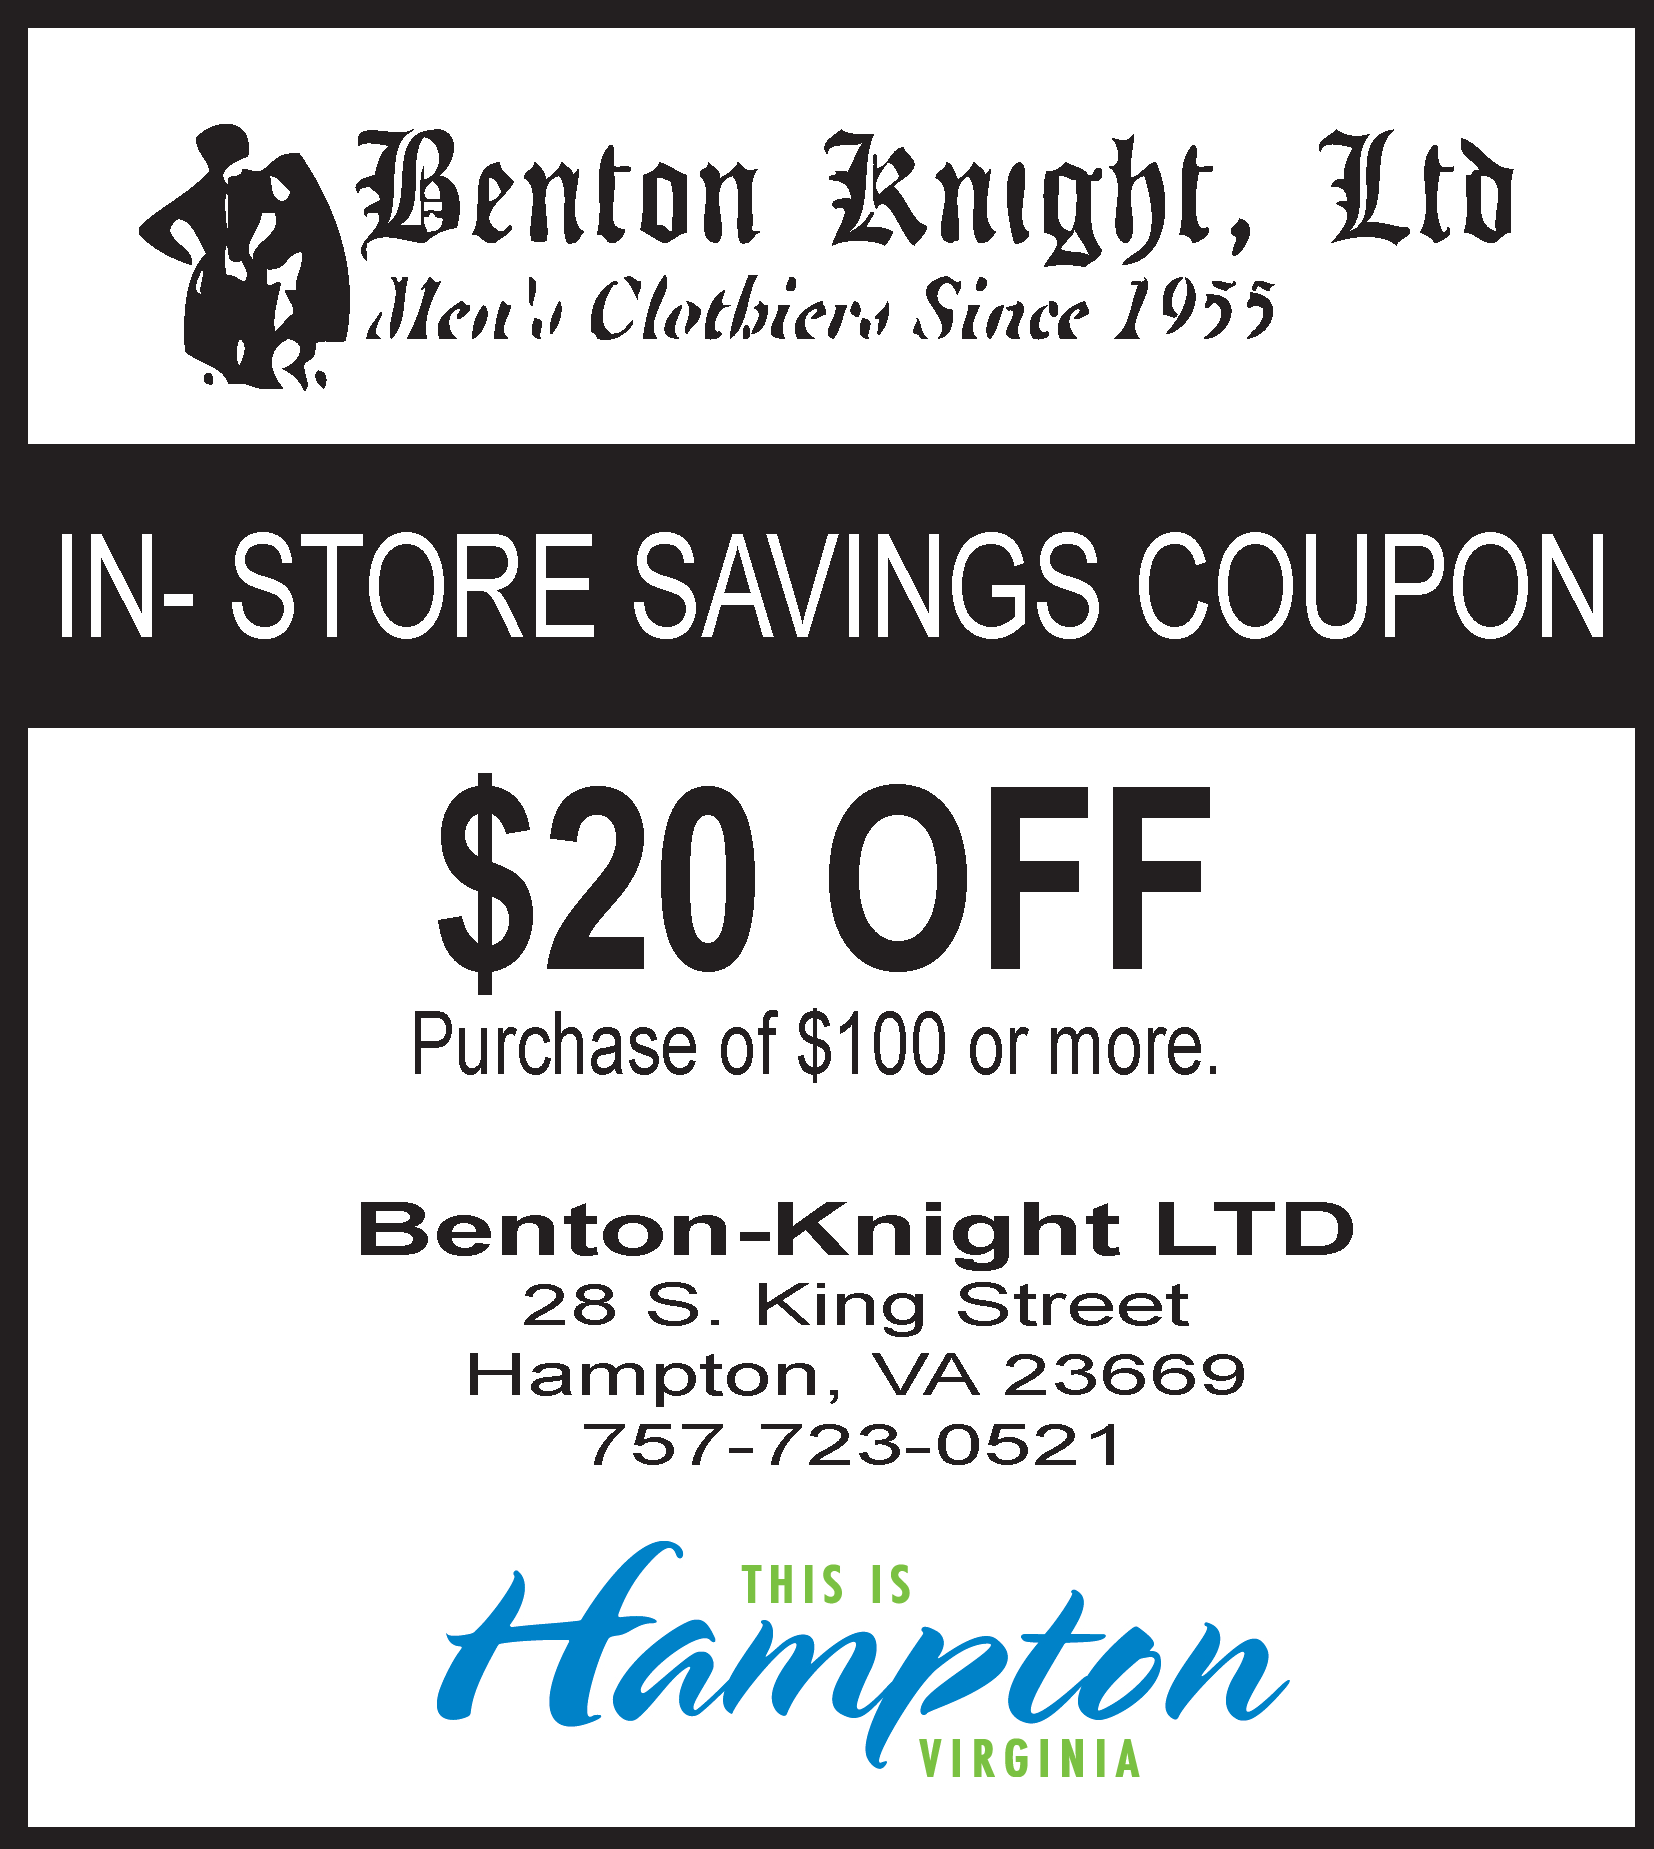 Expired Knight Rifles Coupon Codes